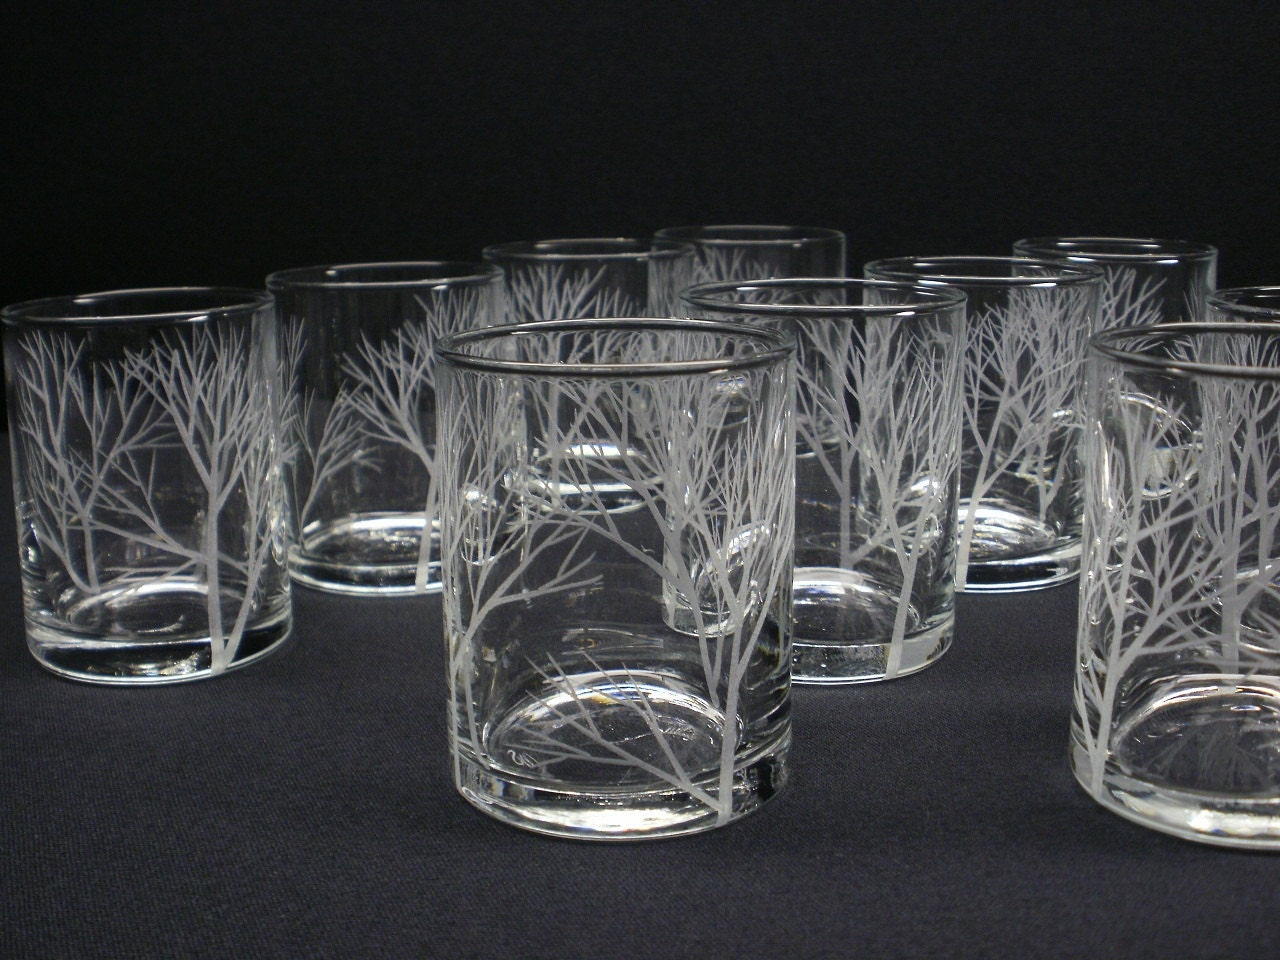 12 Votive Holders Hand Engraved Glass Candle Holders